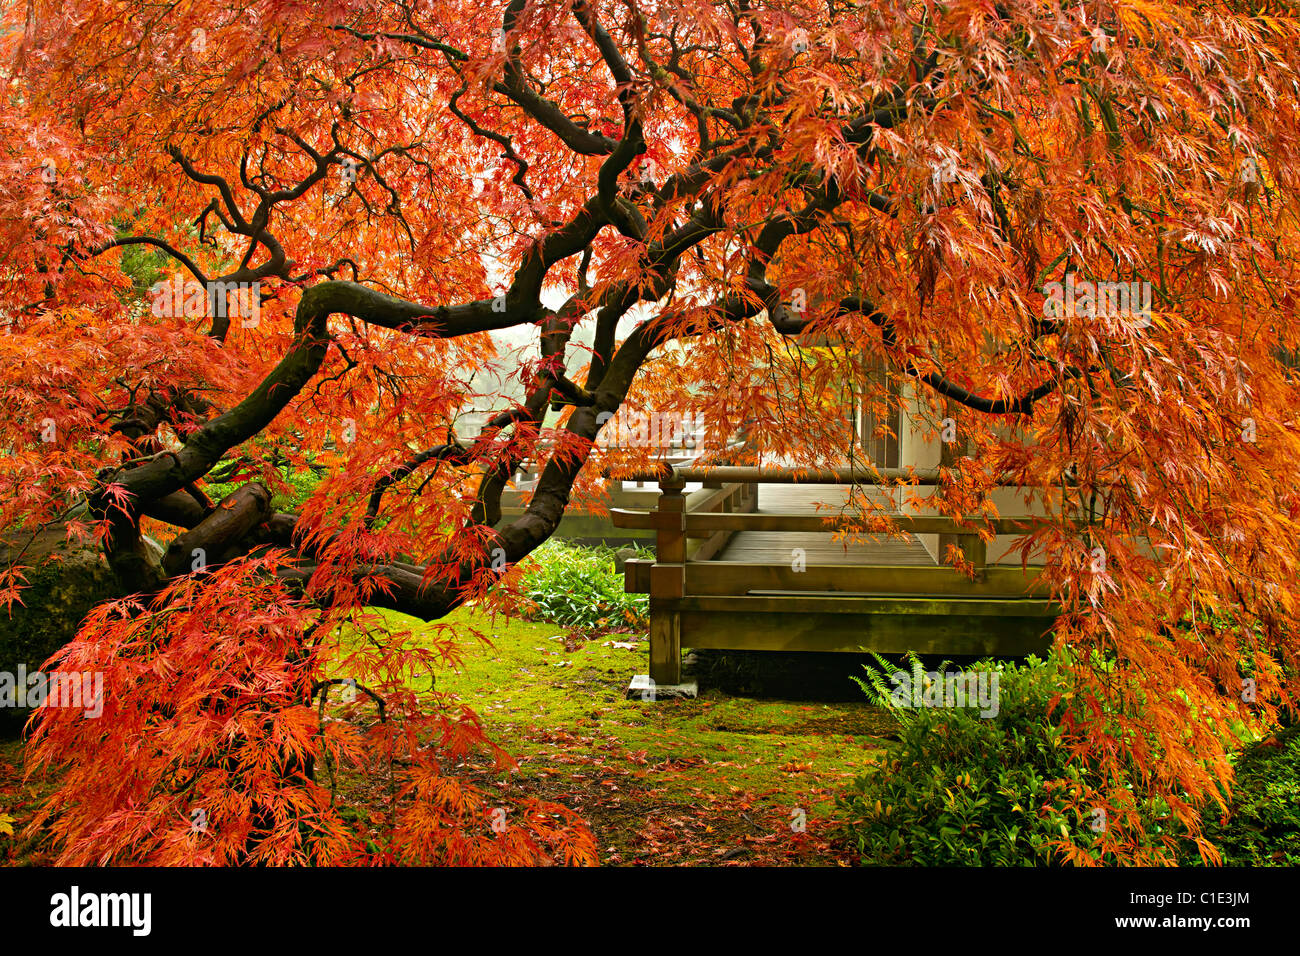 Red Lace Leaf Maple Tree in Autumn at Portland Japanese Garden Stock ...